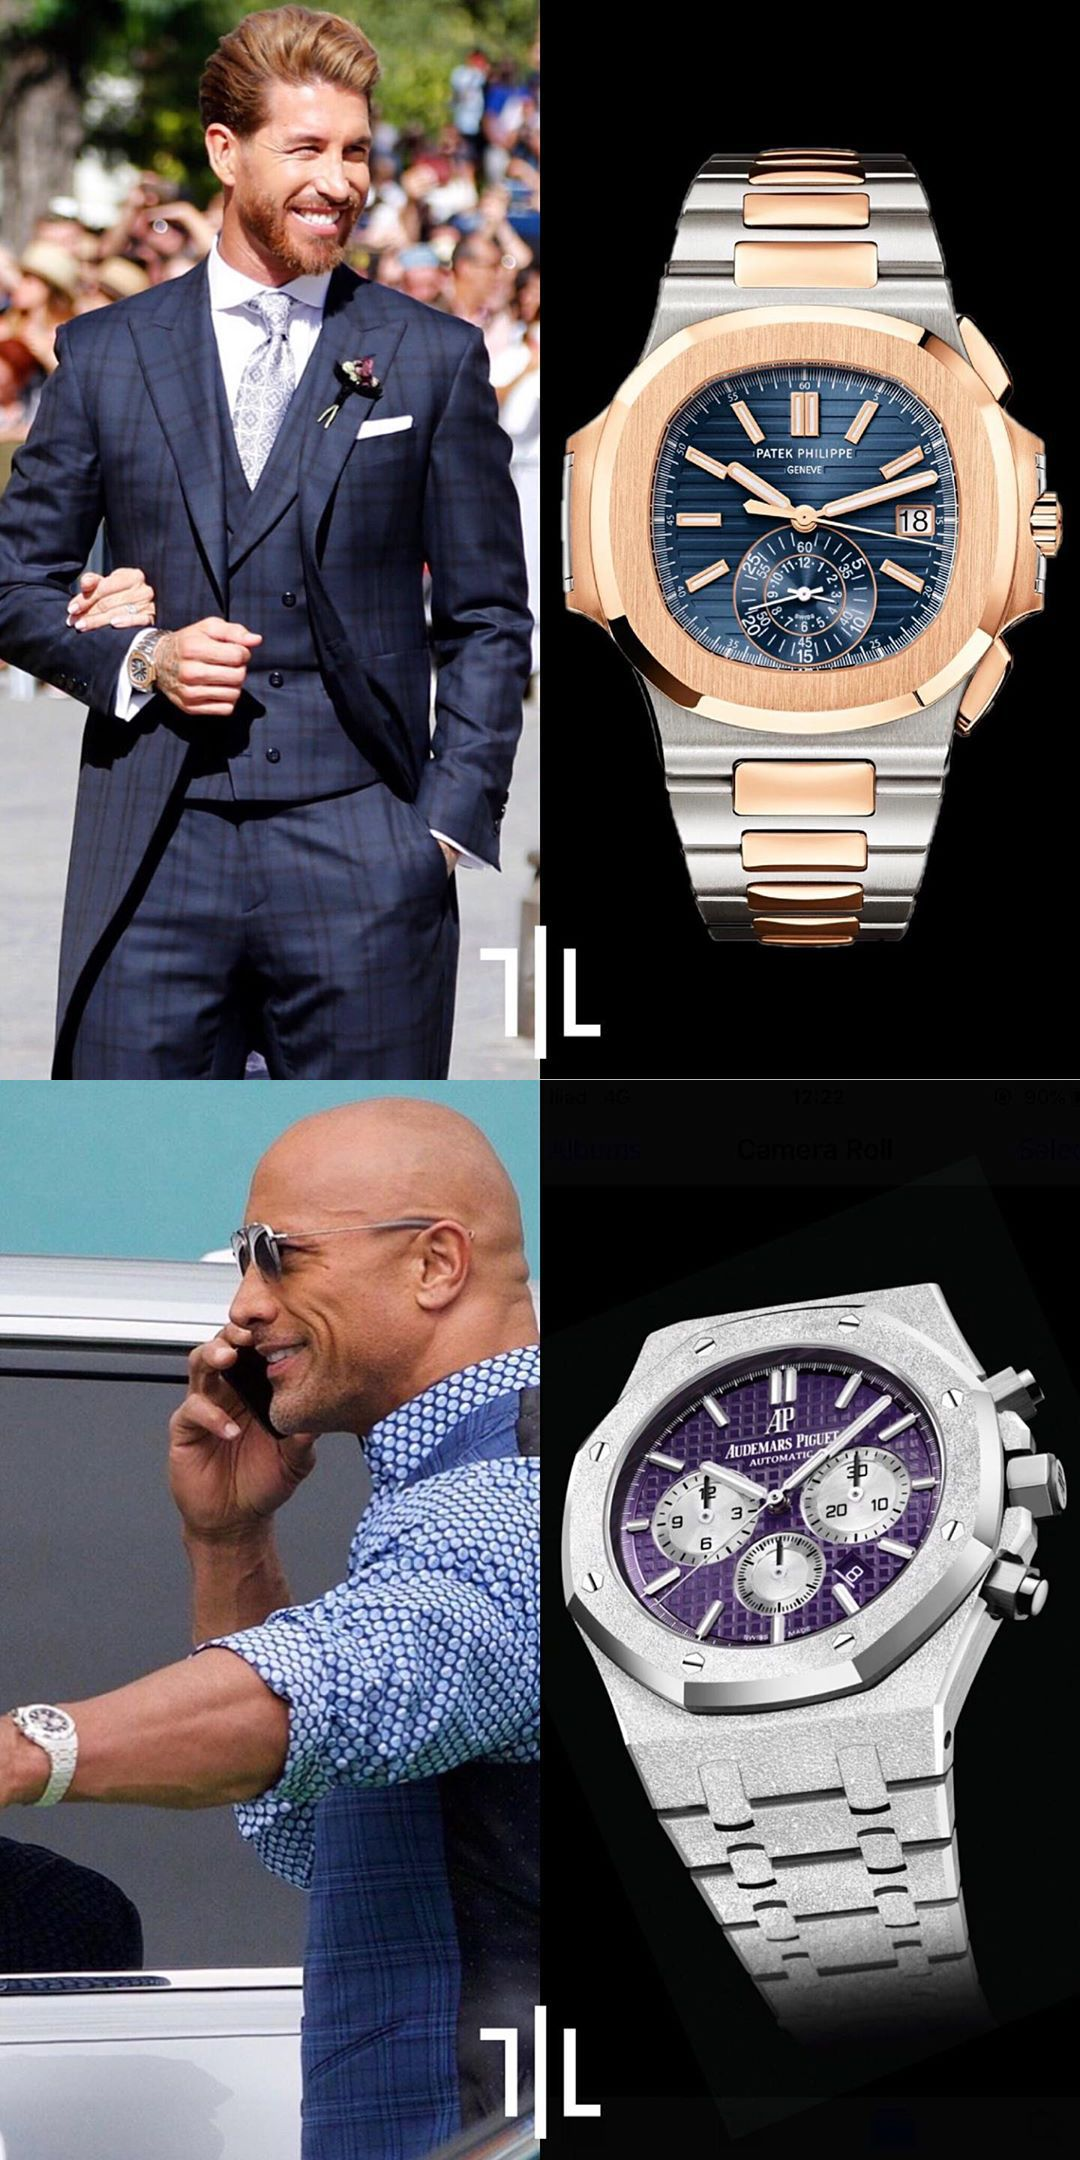 The Rock And A Celebrity Both Wear High End Luxury Watch Patek Philippe And Audemars Piguet Presenting The F Best Watch Brands Watches For Men Luxury Watches